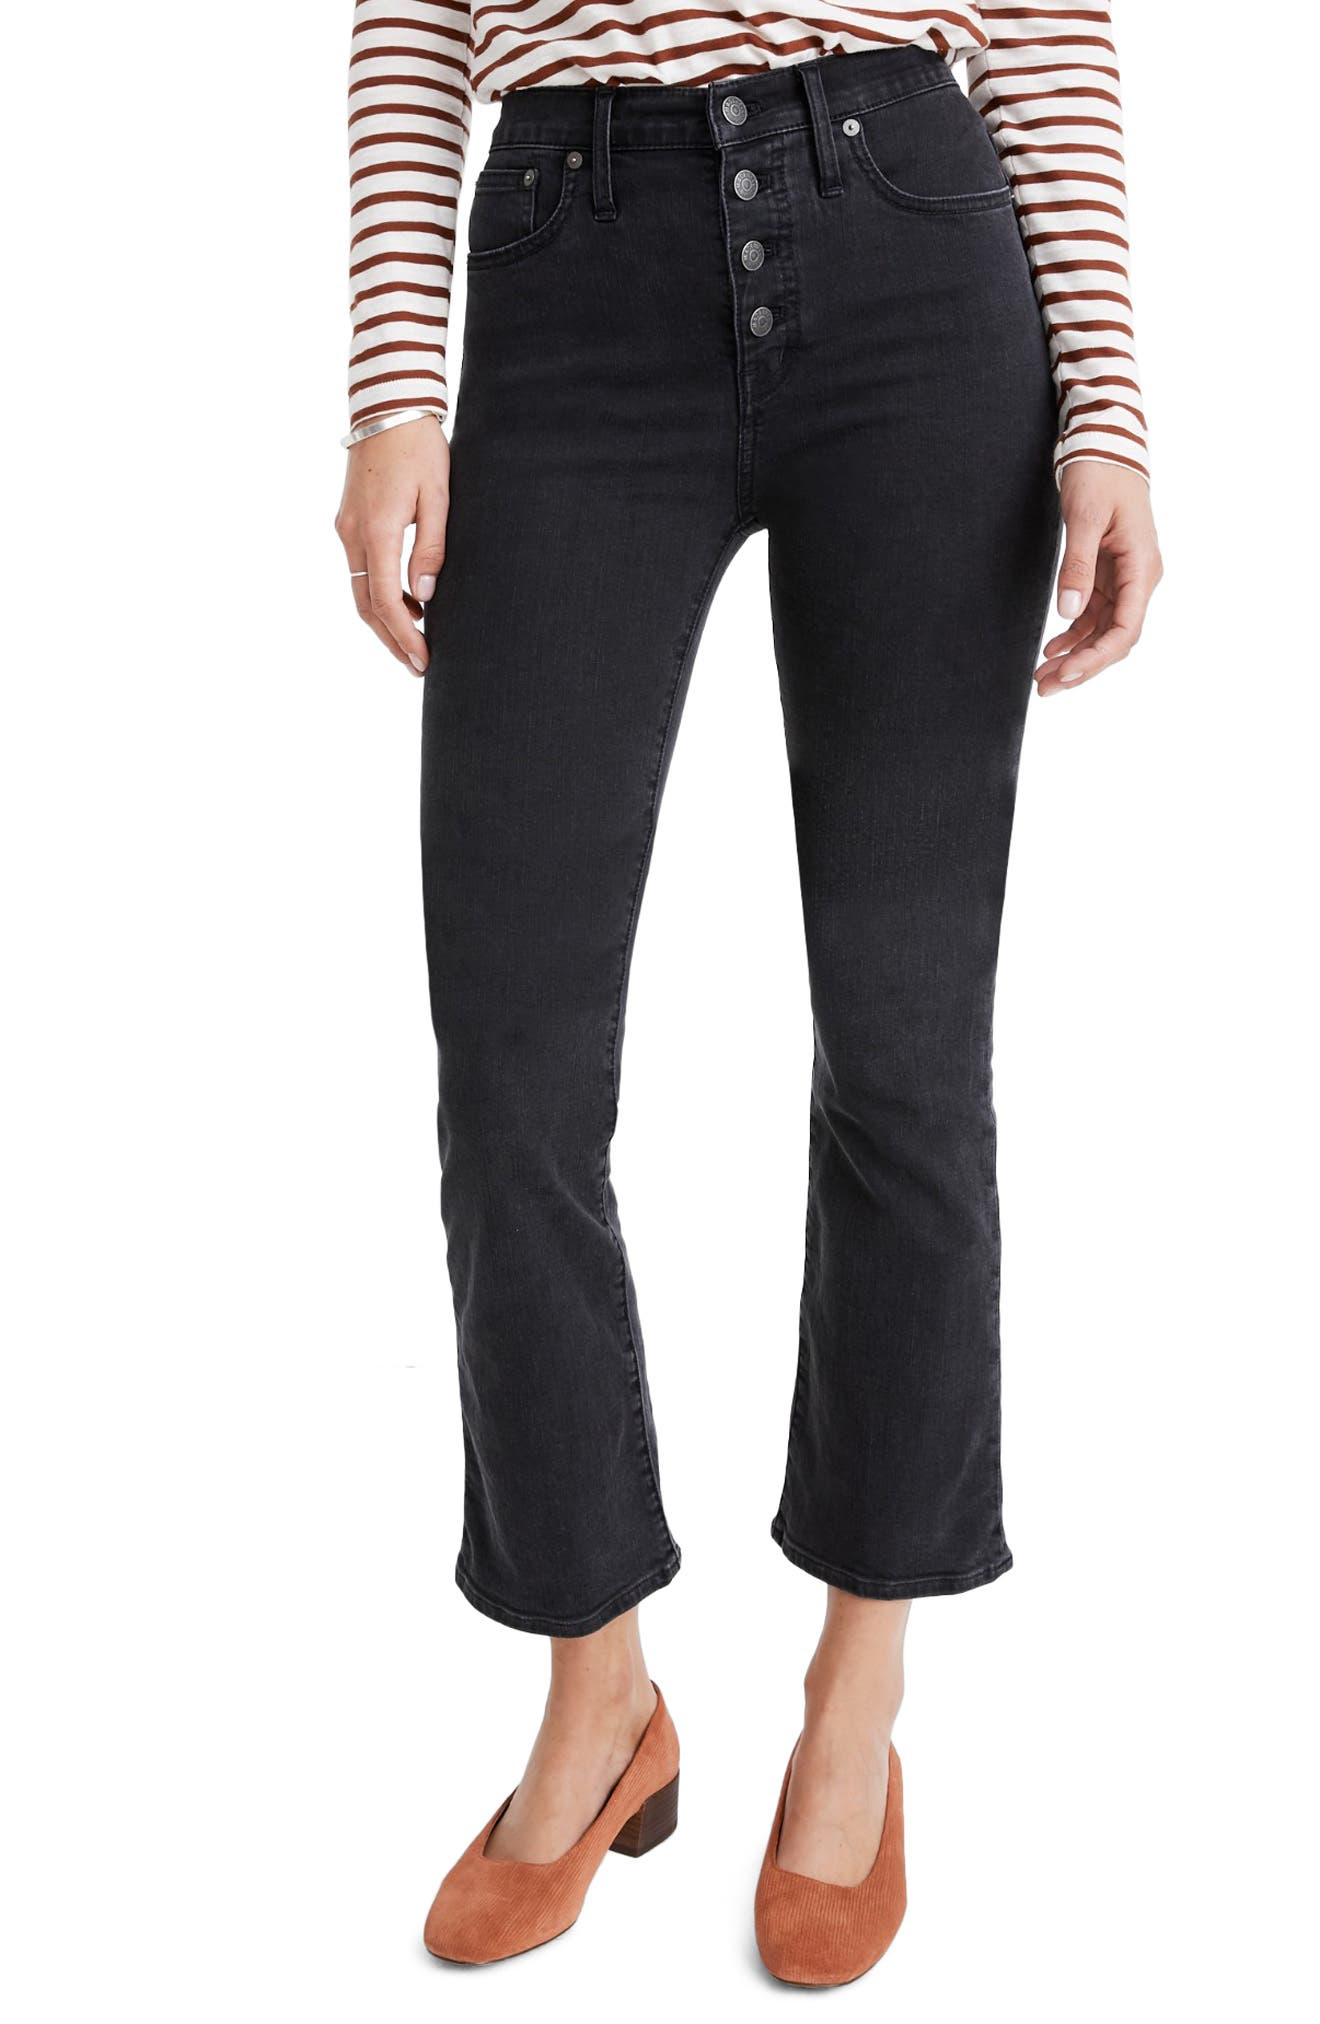 Madewell Cali Button-Front Edition Demi-Boot Jeans (Bellspring Wash) (Regular & Plus Size)